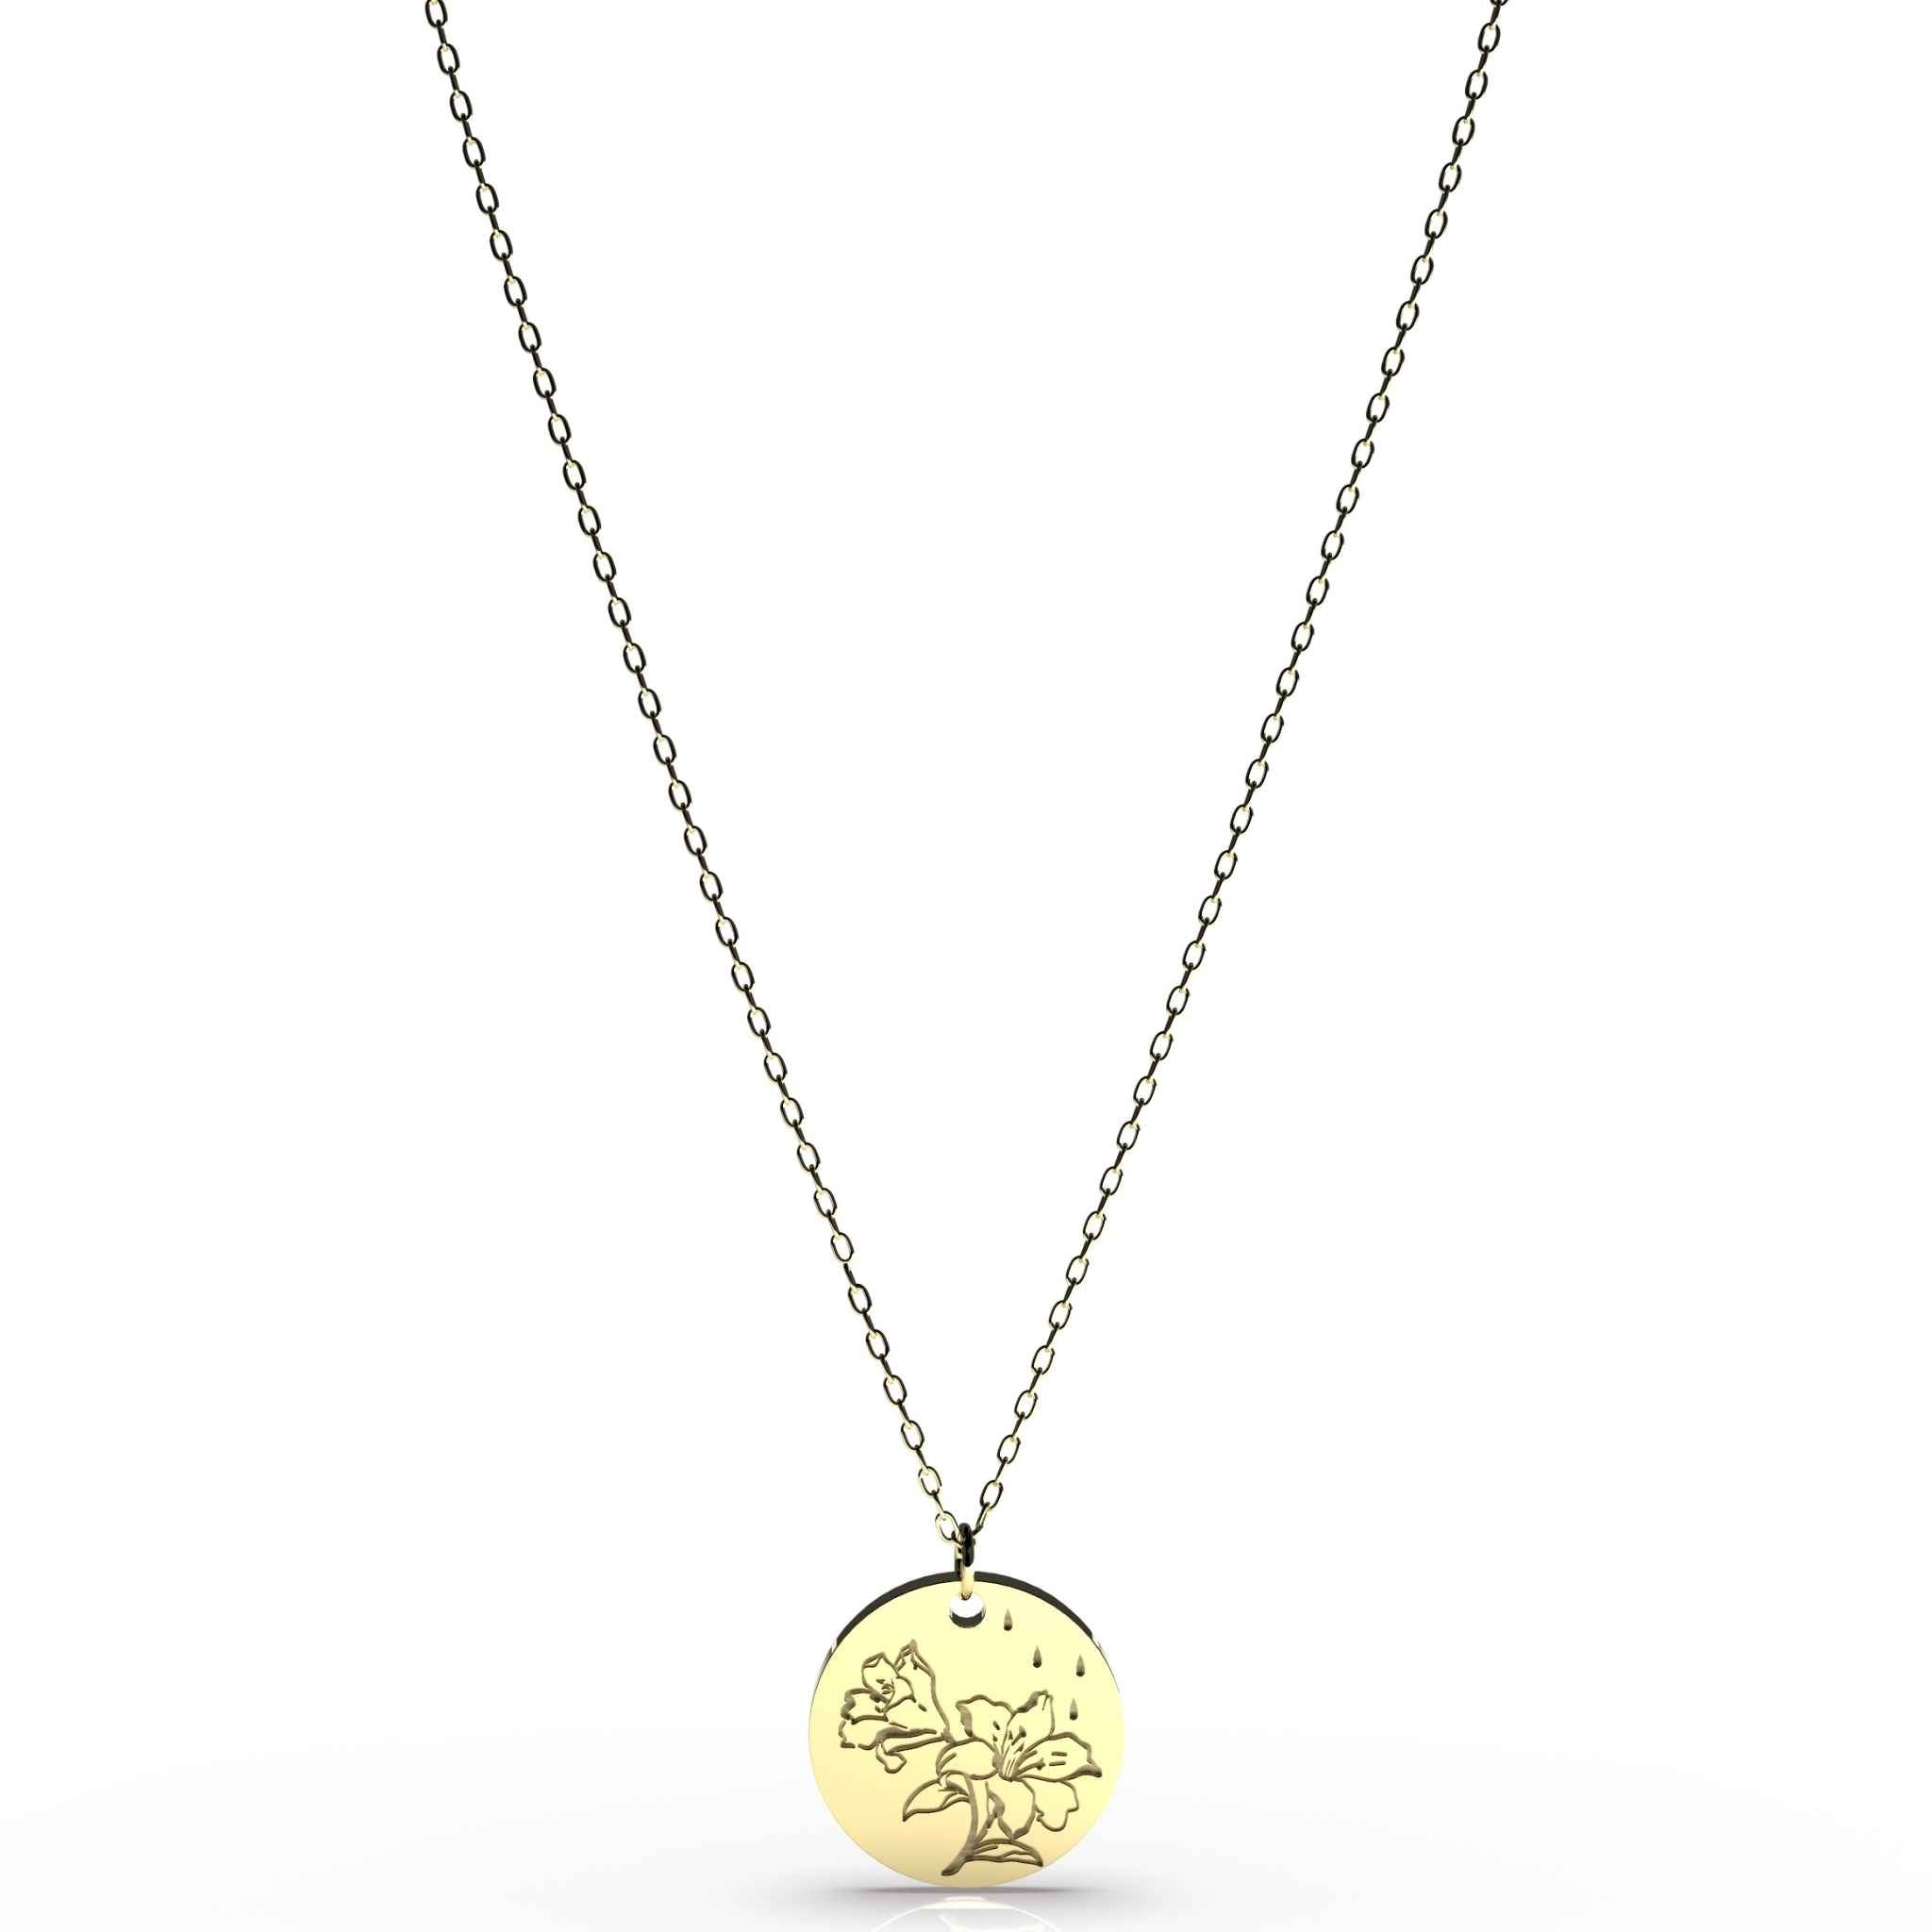 No Rain, No Flowers Disc Necklace by Brittany Noonan